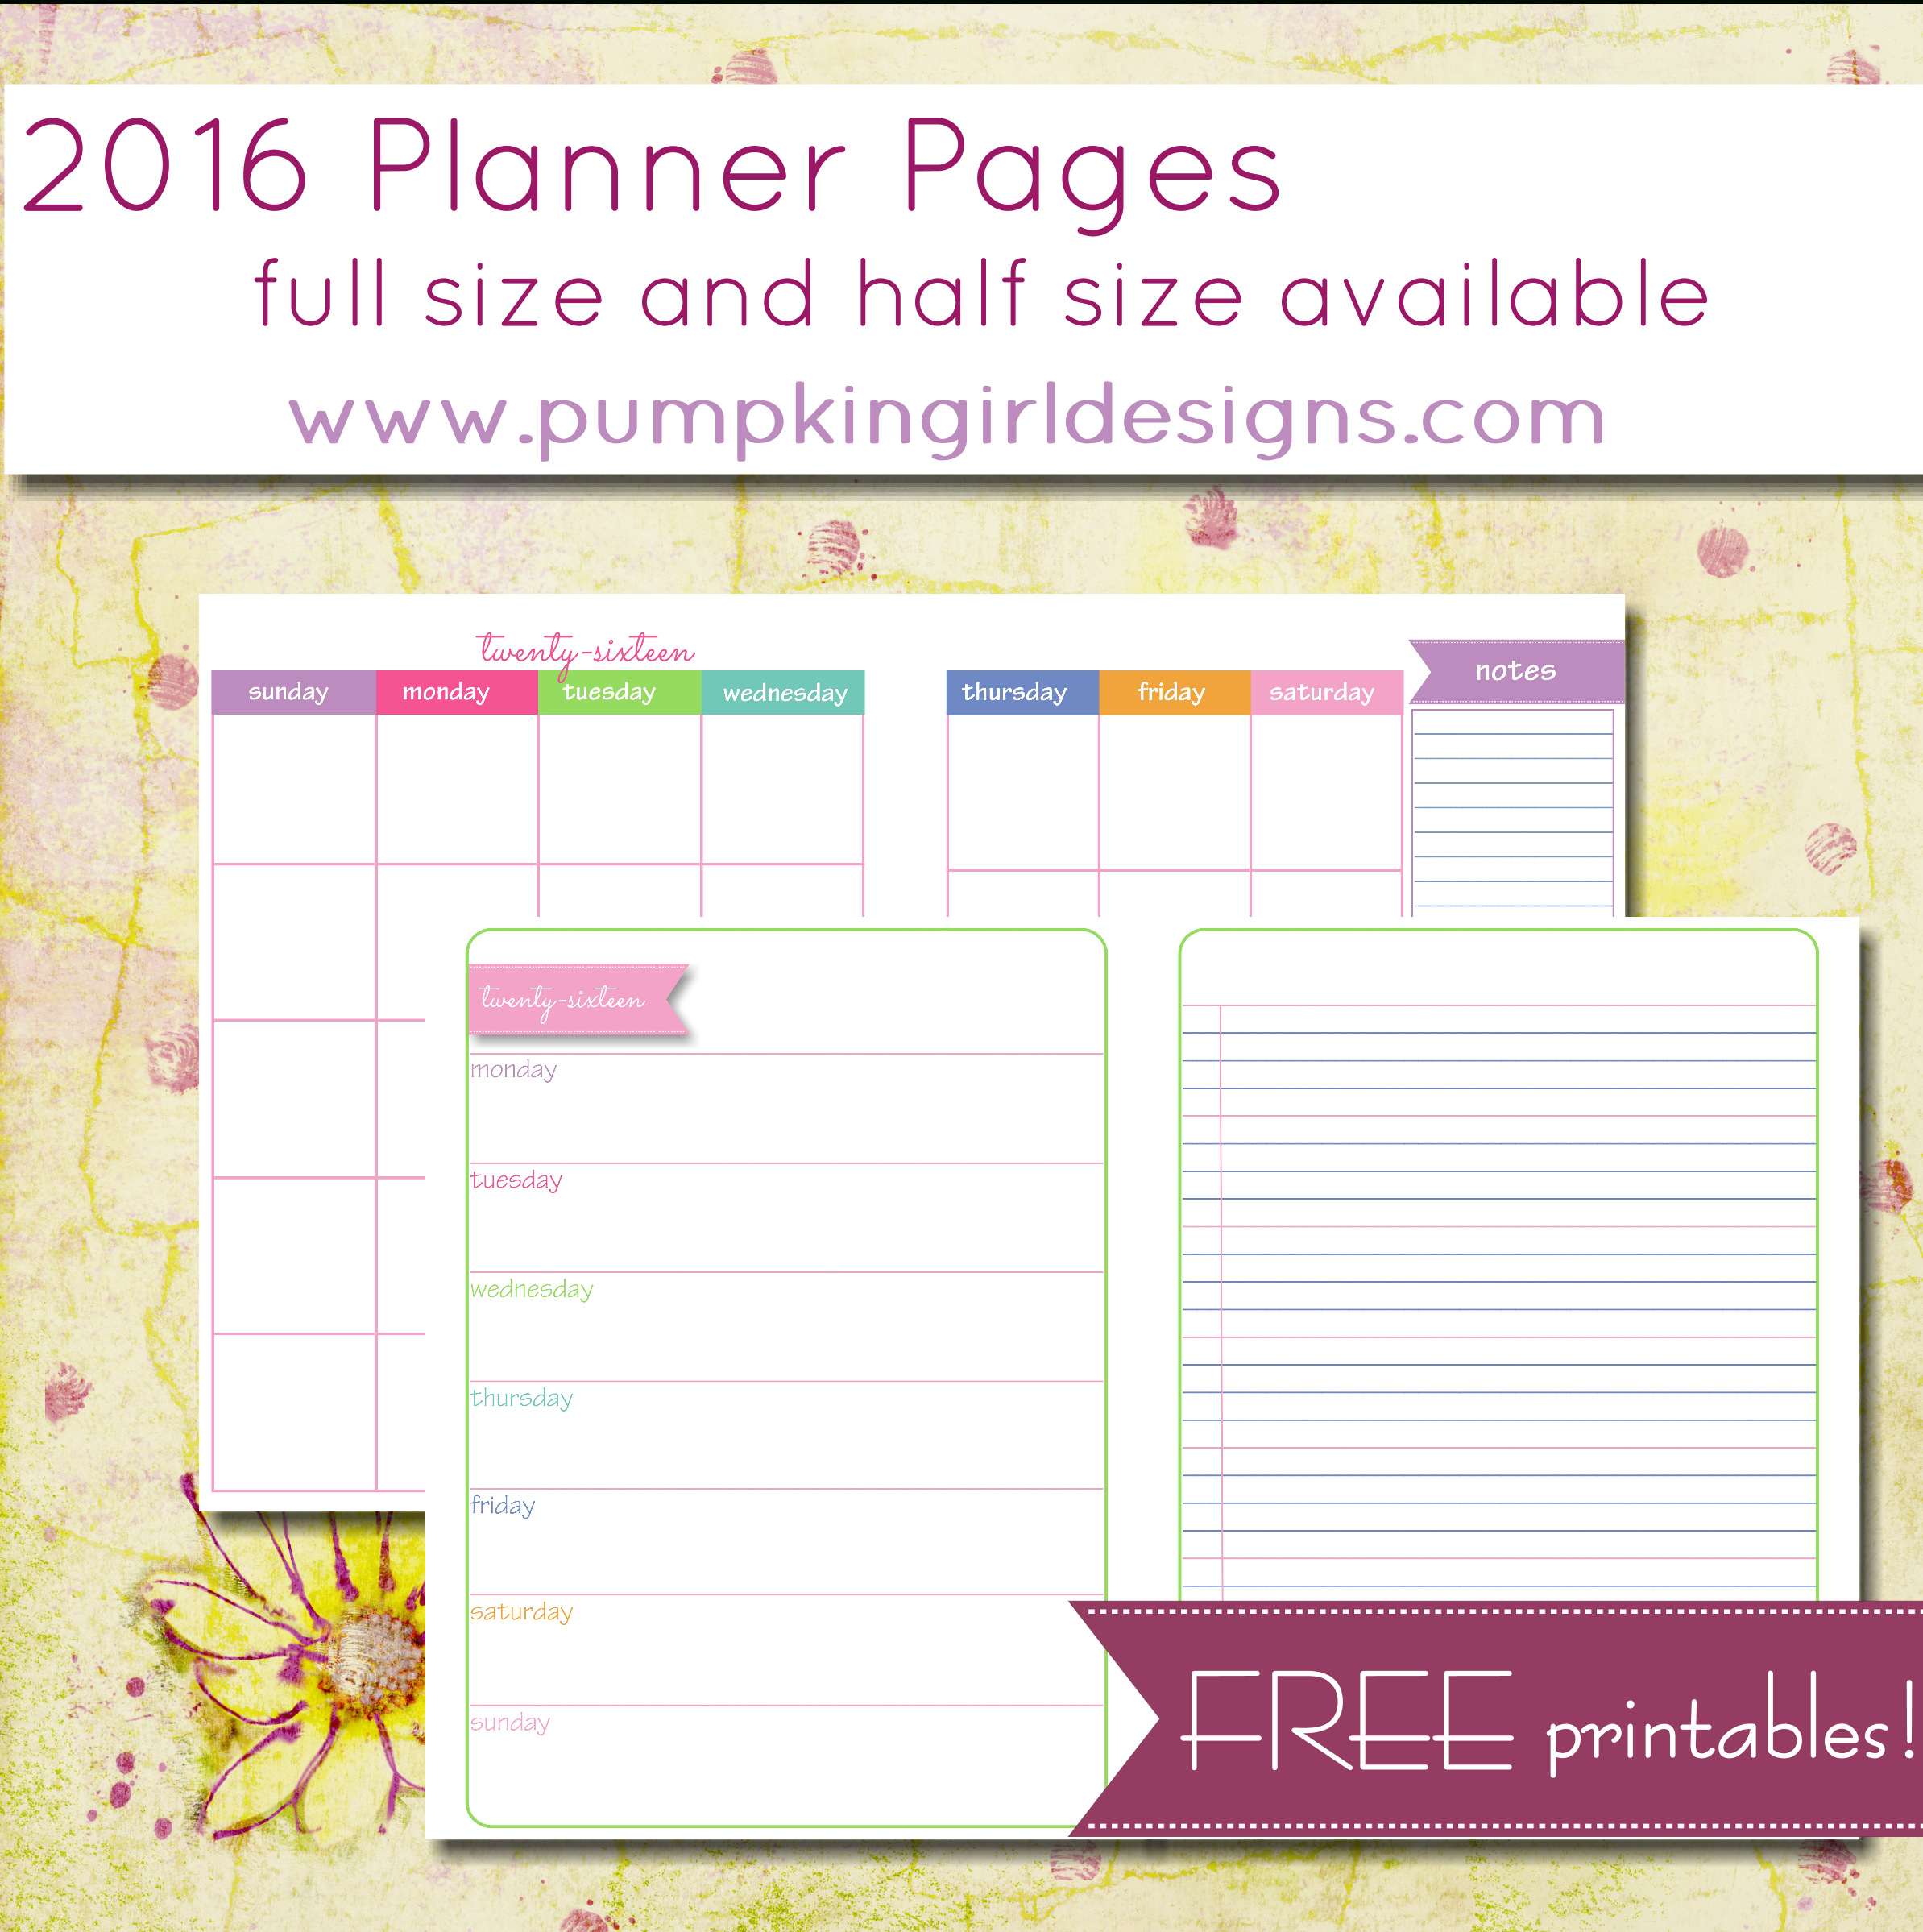 Printable Planner Pages | The Mac And Cheese Chronicles - Free Printable Diary Pages